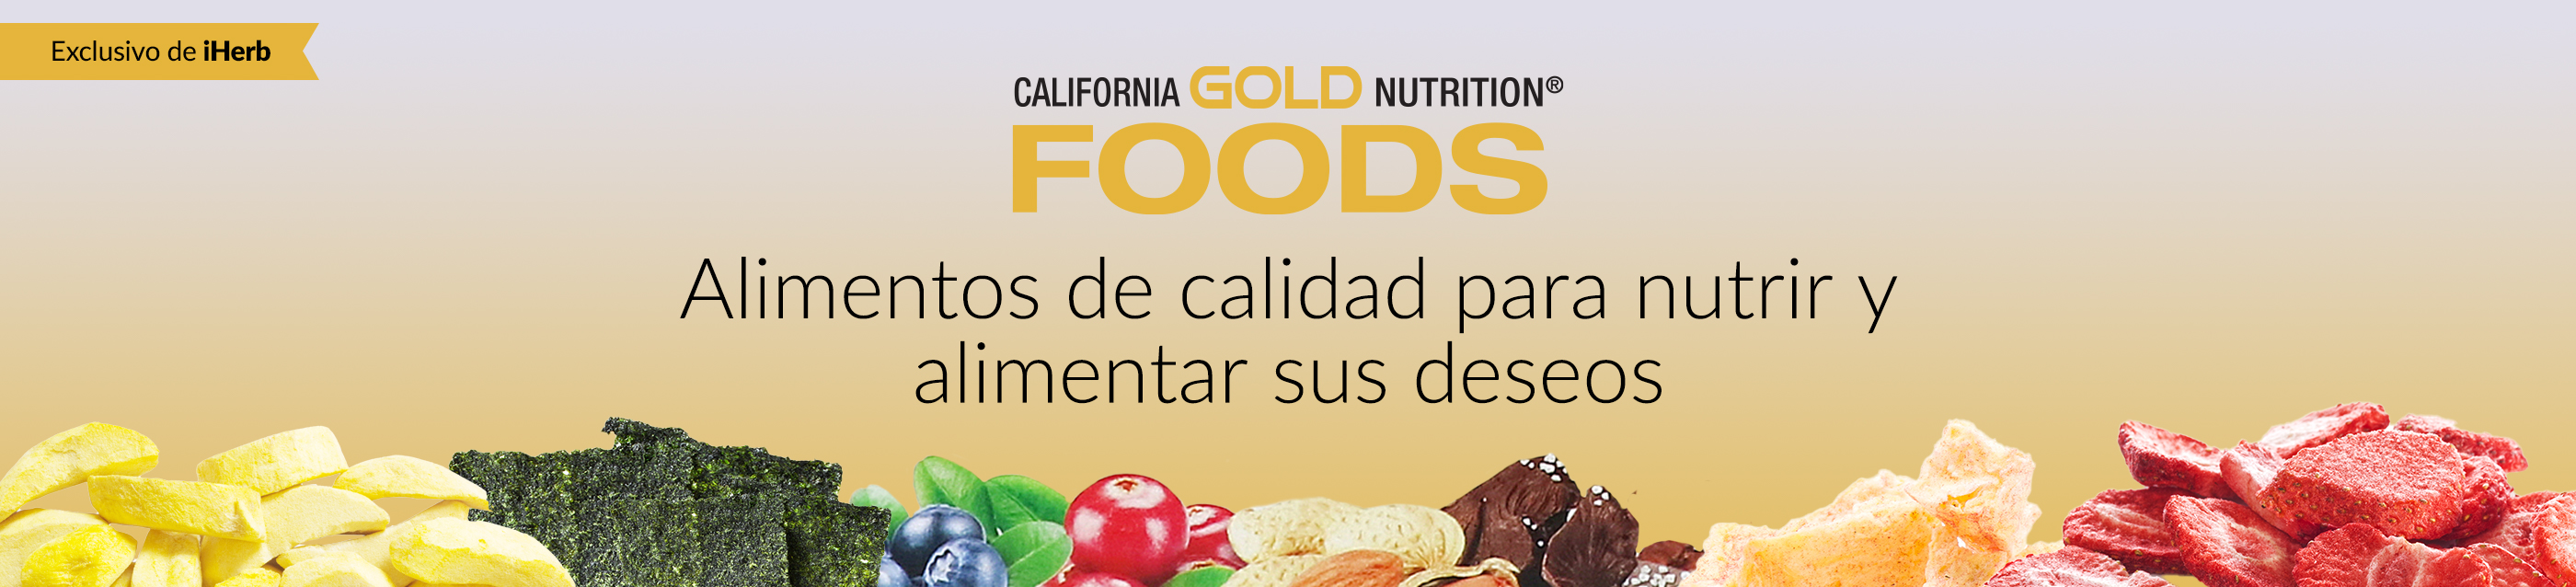 CGN Foods